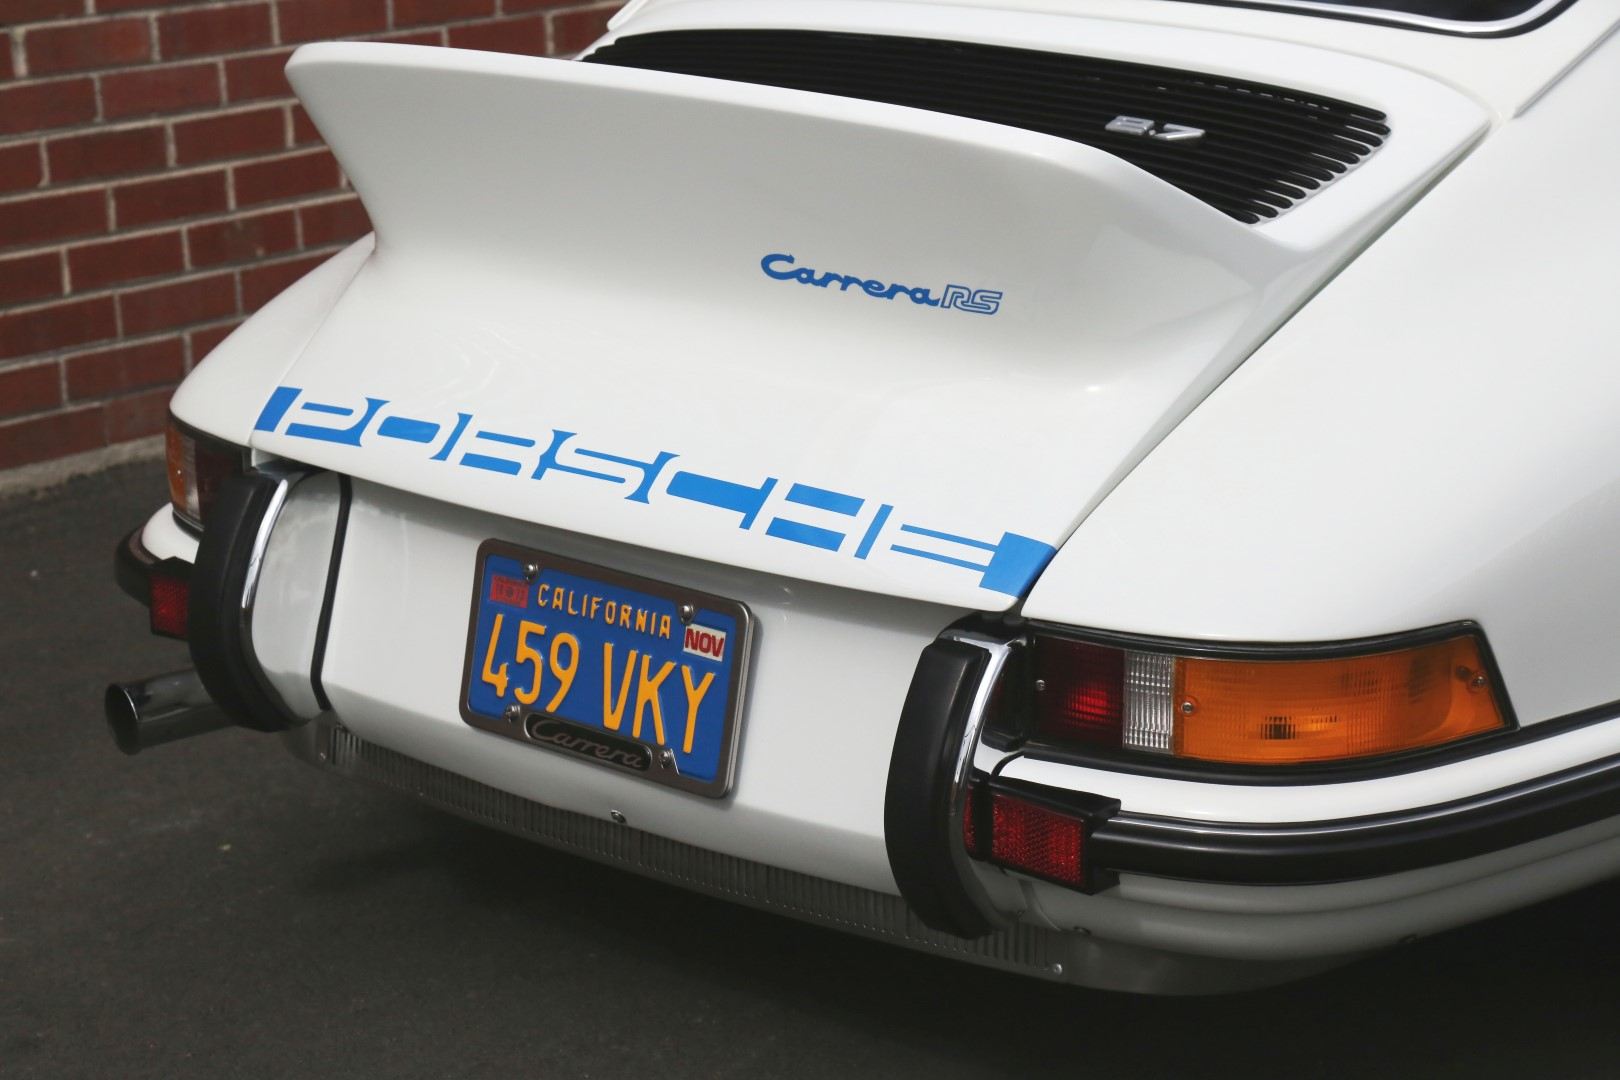 Porsche-911-Carrera-RS-2.7-1973-for-sale-29